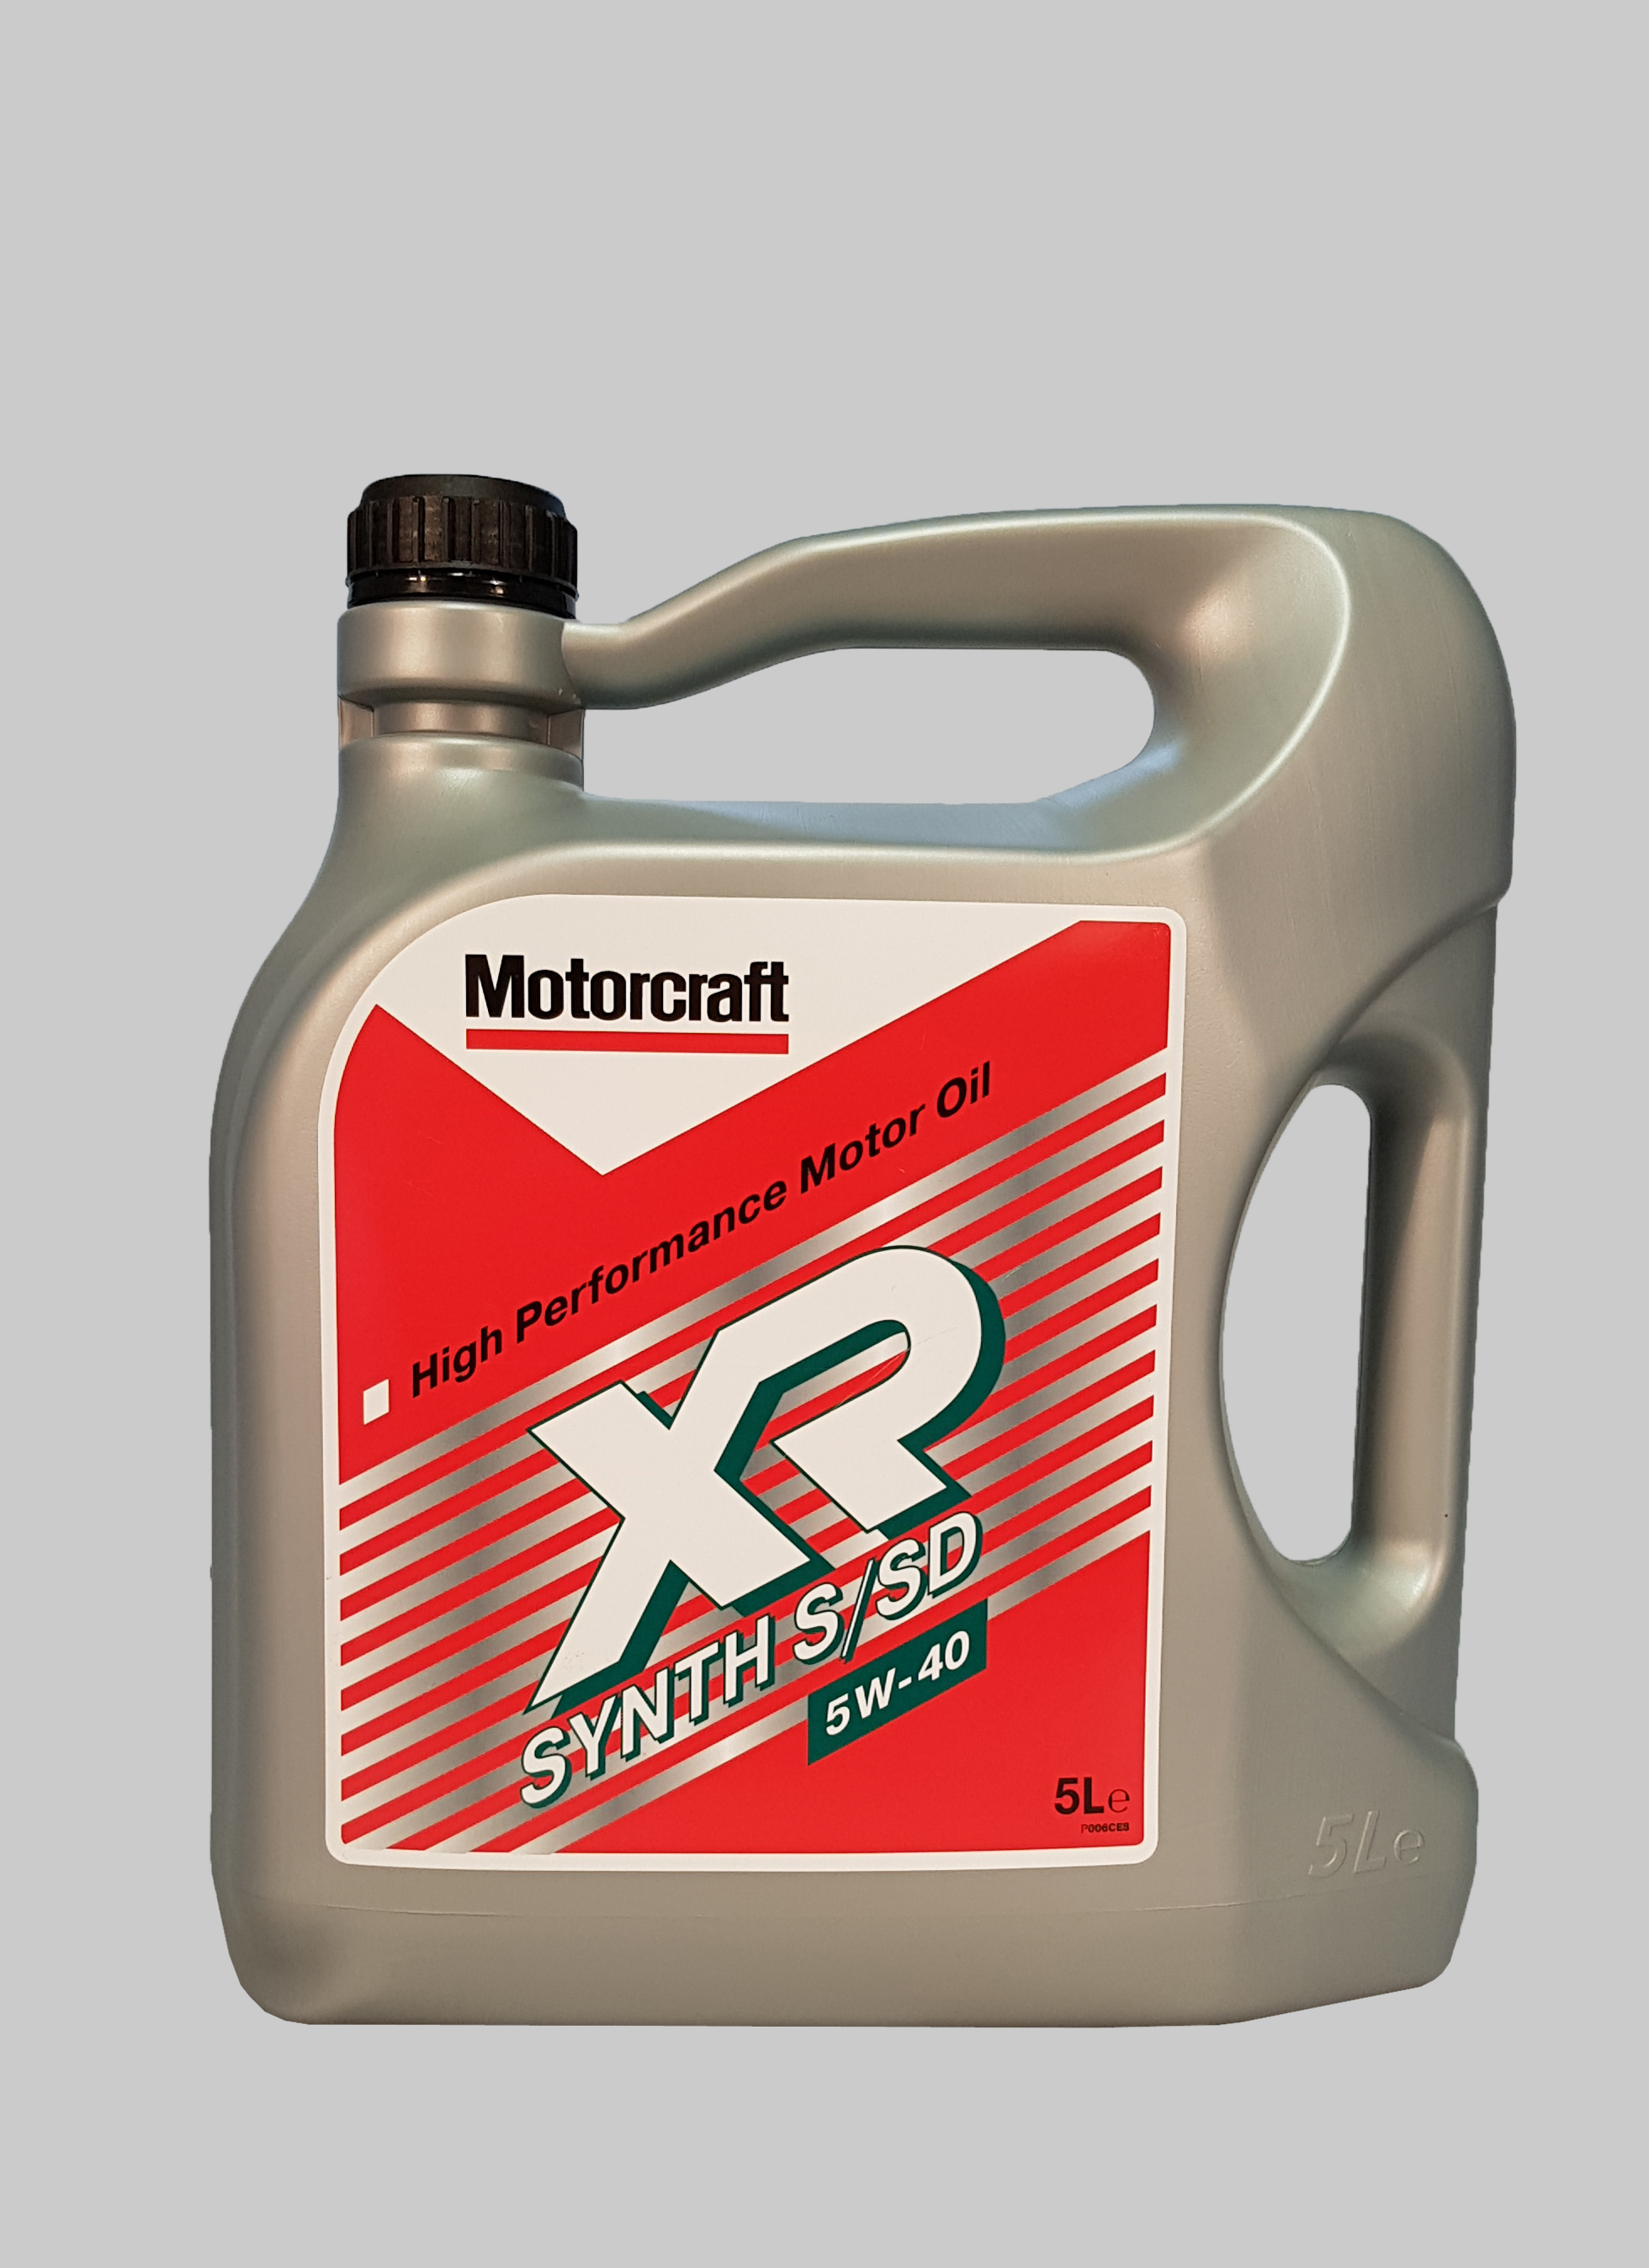 Ford Motorcraft XR Synth S/SD 5W-40 5 Liter